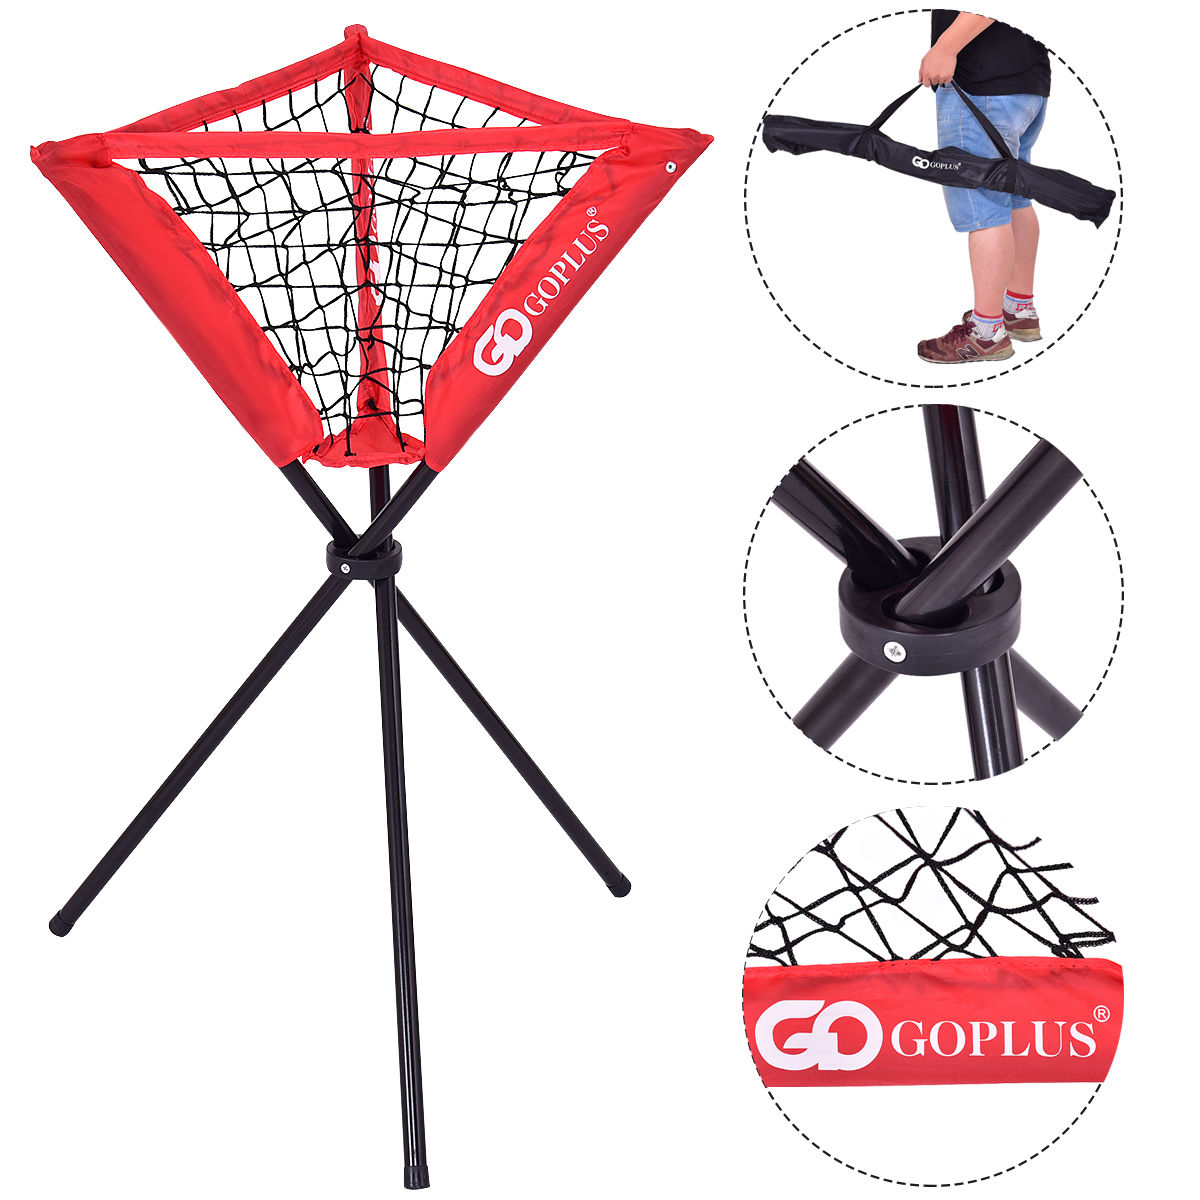 Goplus Portable Baseball Softball Batting Practice Ball Caddy with Carry Bag by Costway